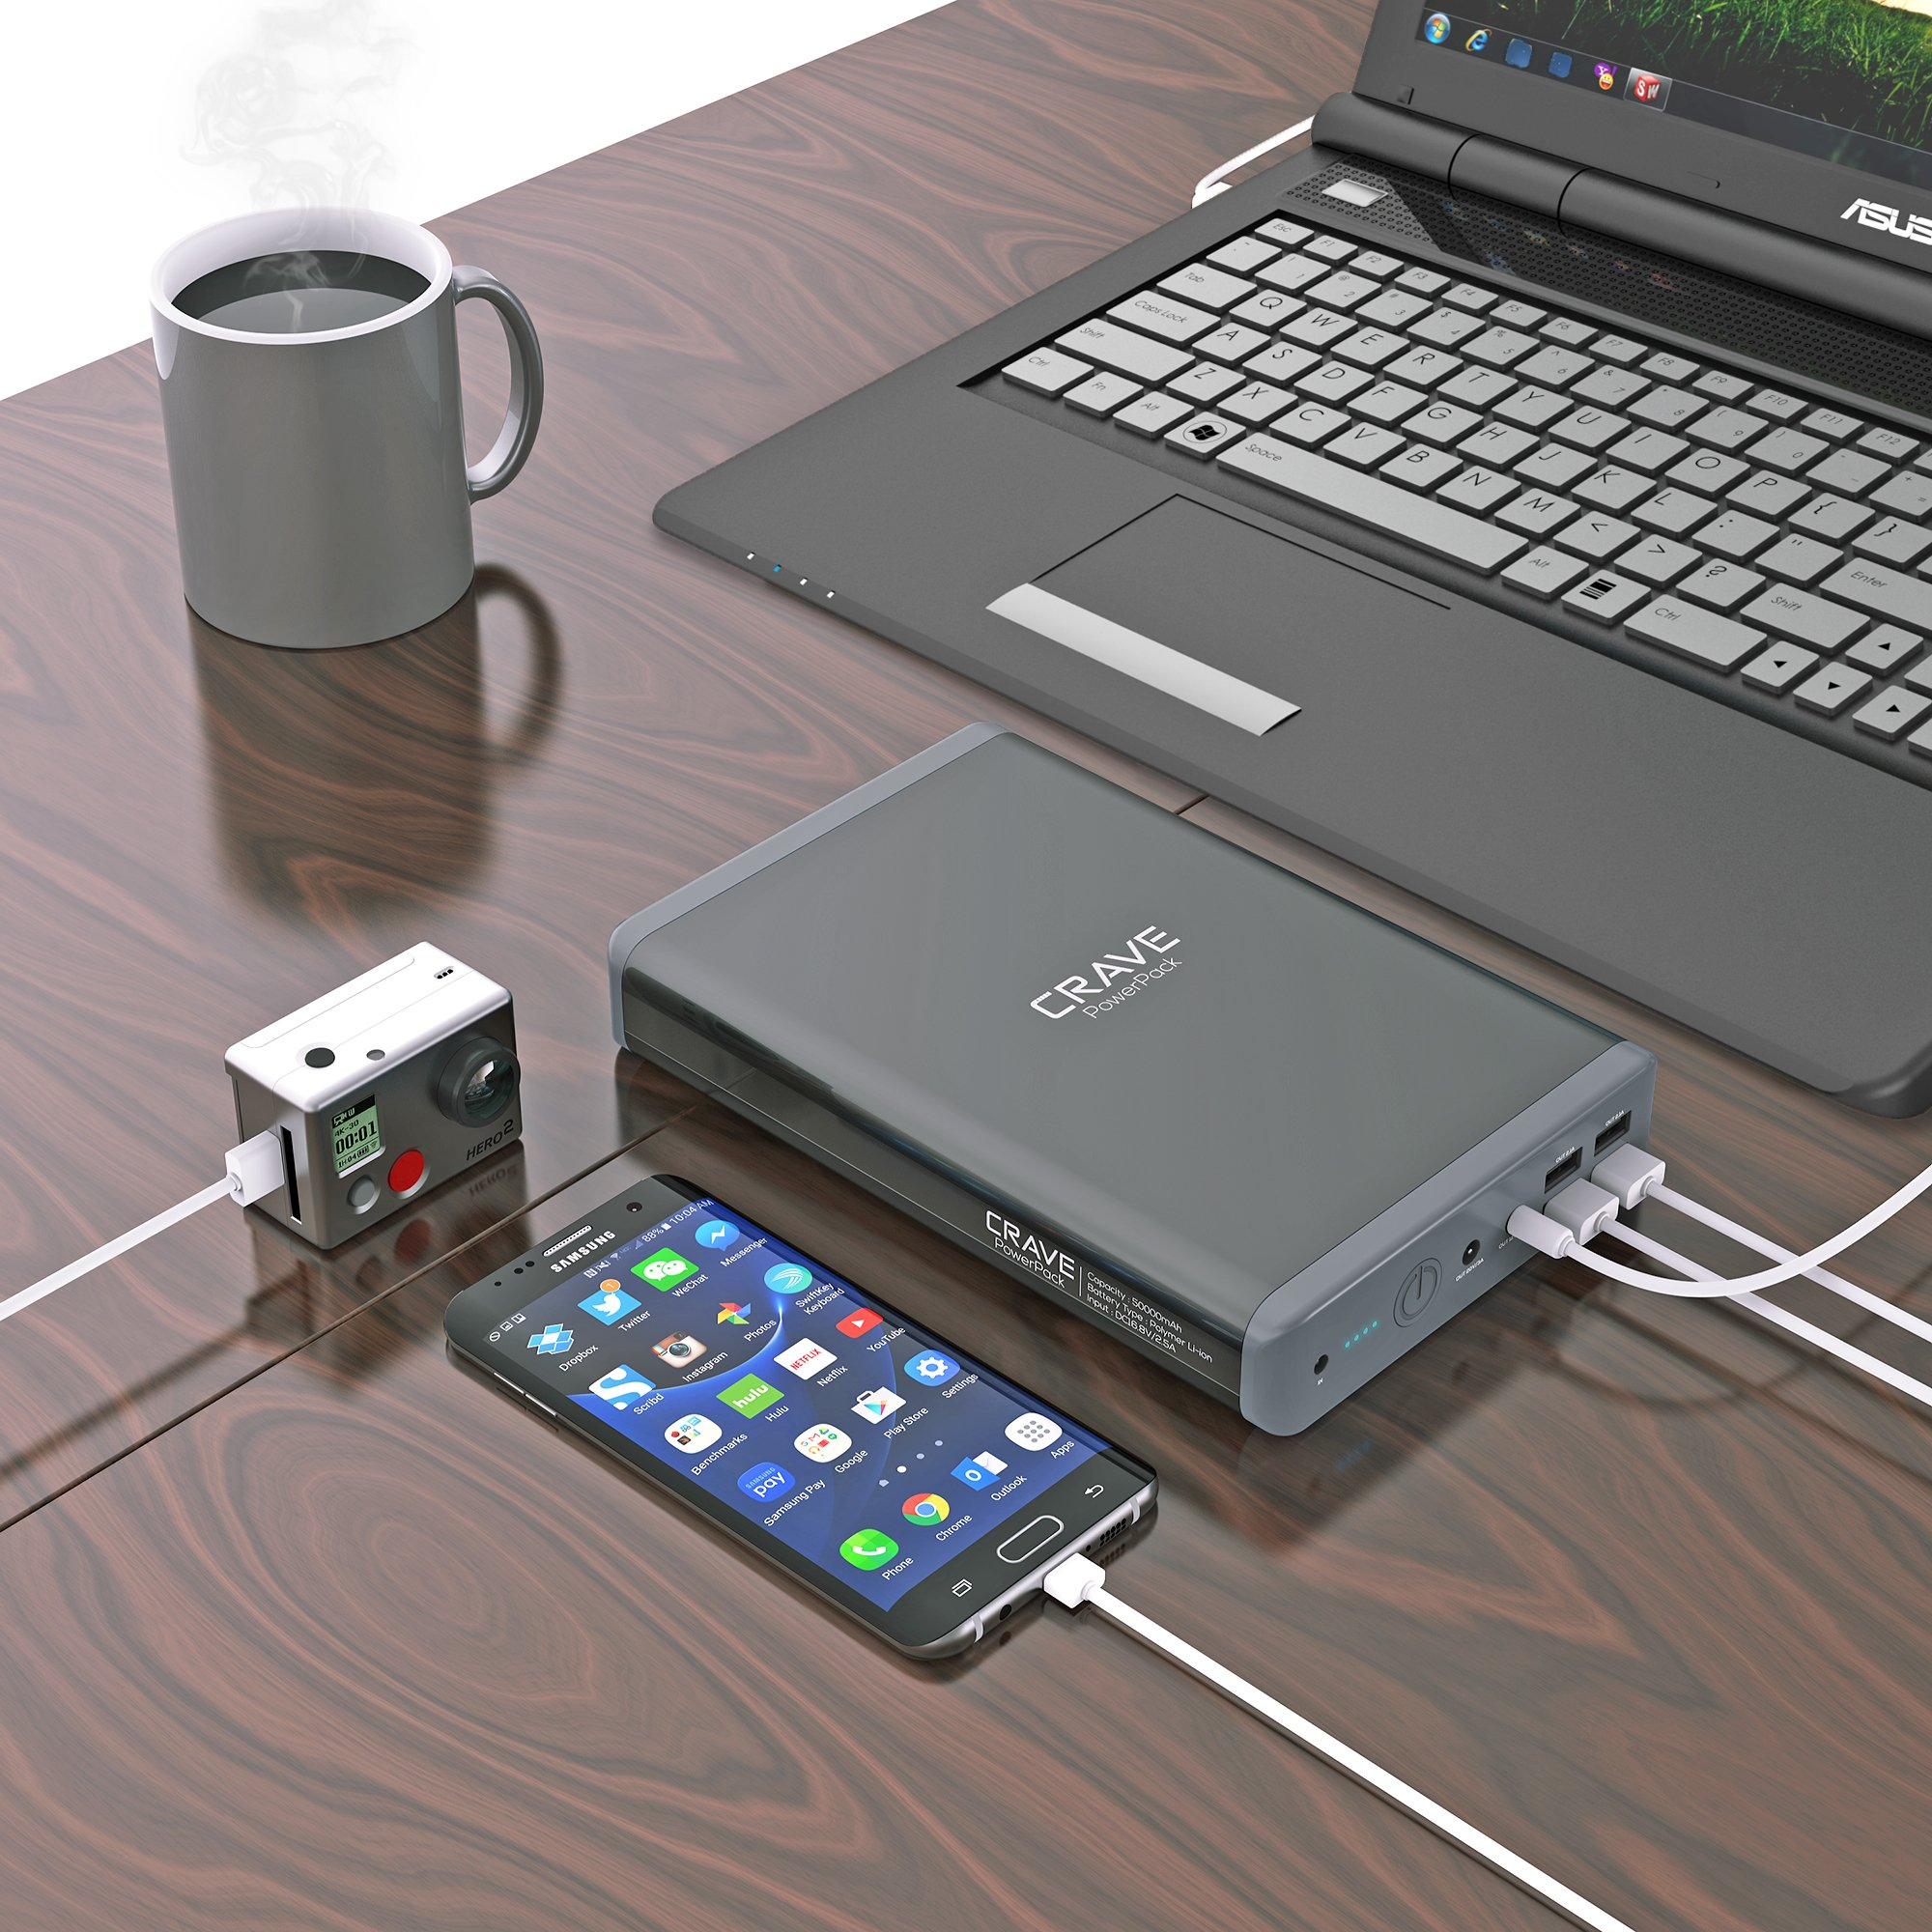 Crave PowerPack CRVPP101 50000 mAh,Dual USB and Dual Laptop Ports Ultra-High Density Portable Power Bank by Crave (Image #7)